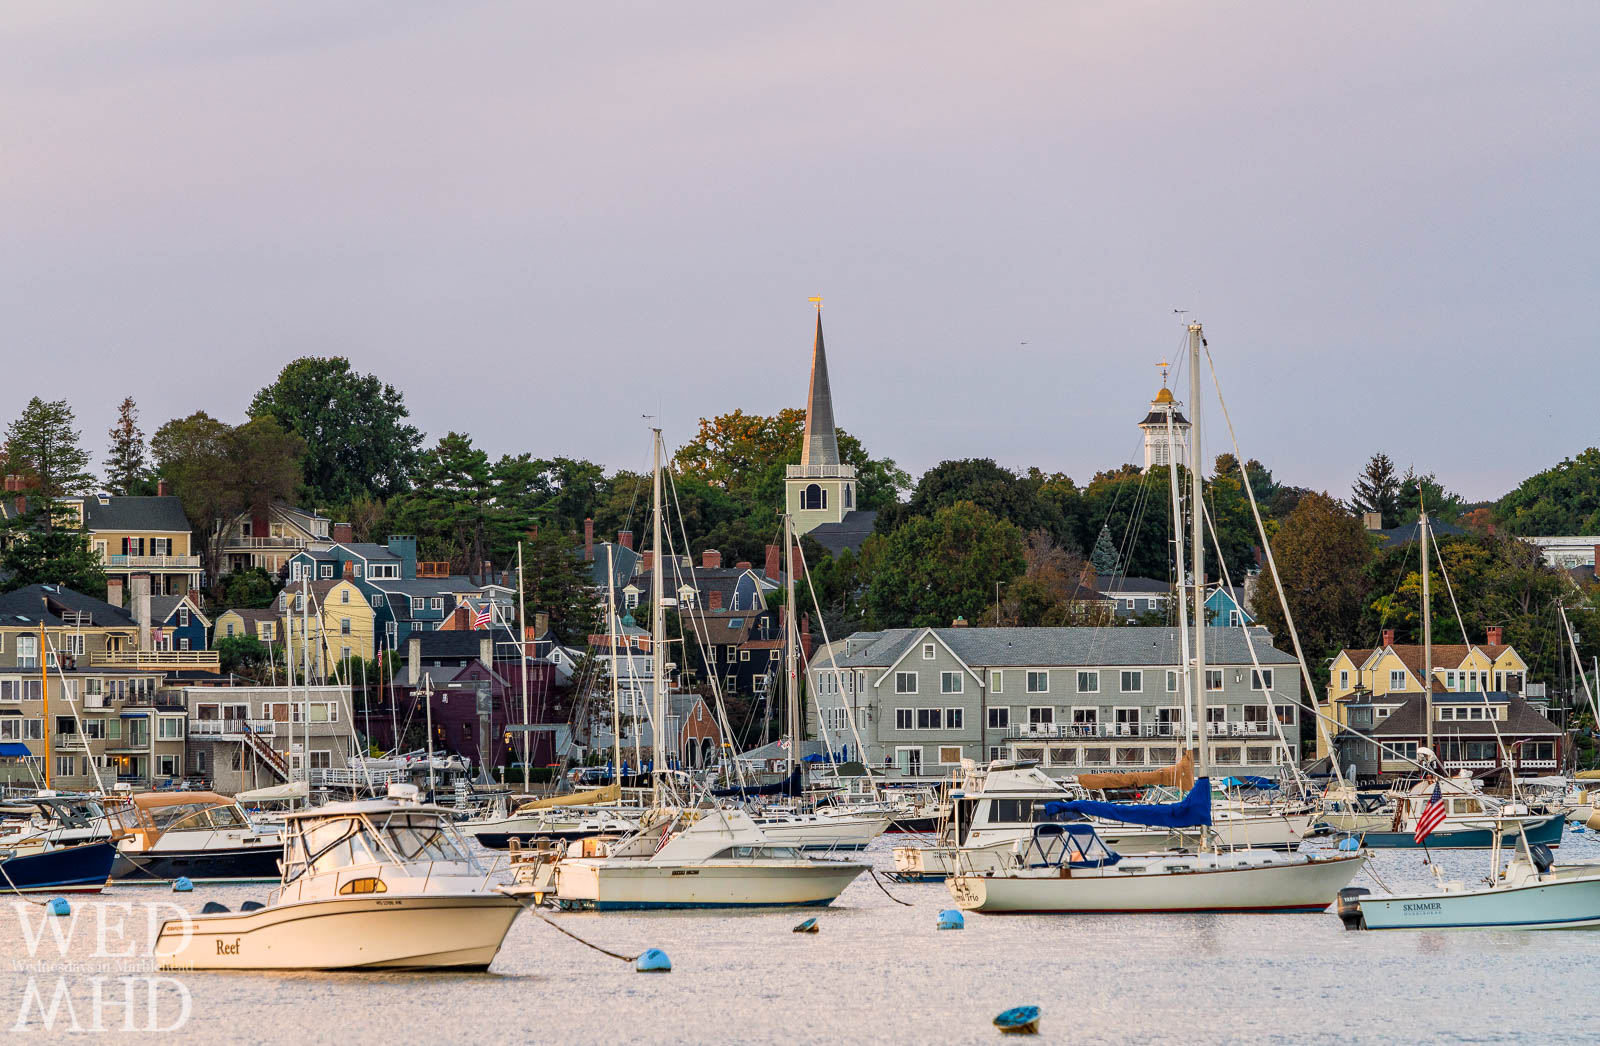 The view across Marblehead Harbor from this spot on Harbor Avenue captures a full house with boats filling nealy every mooring and colorful homes on the distant shore